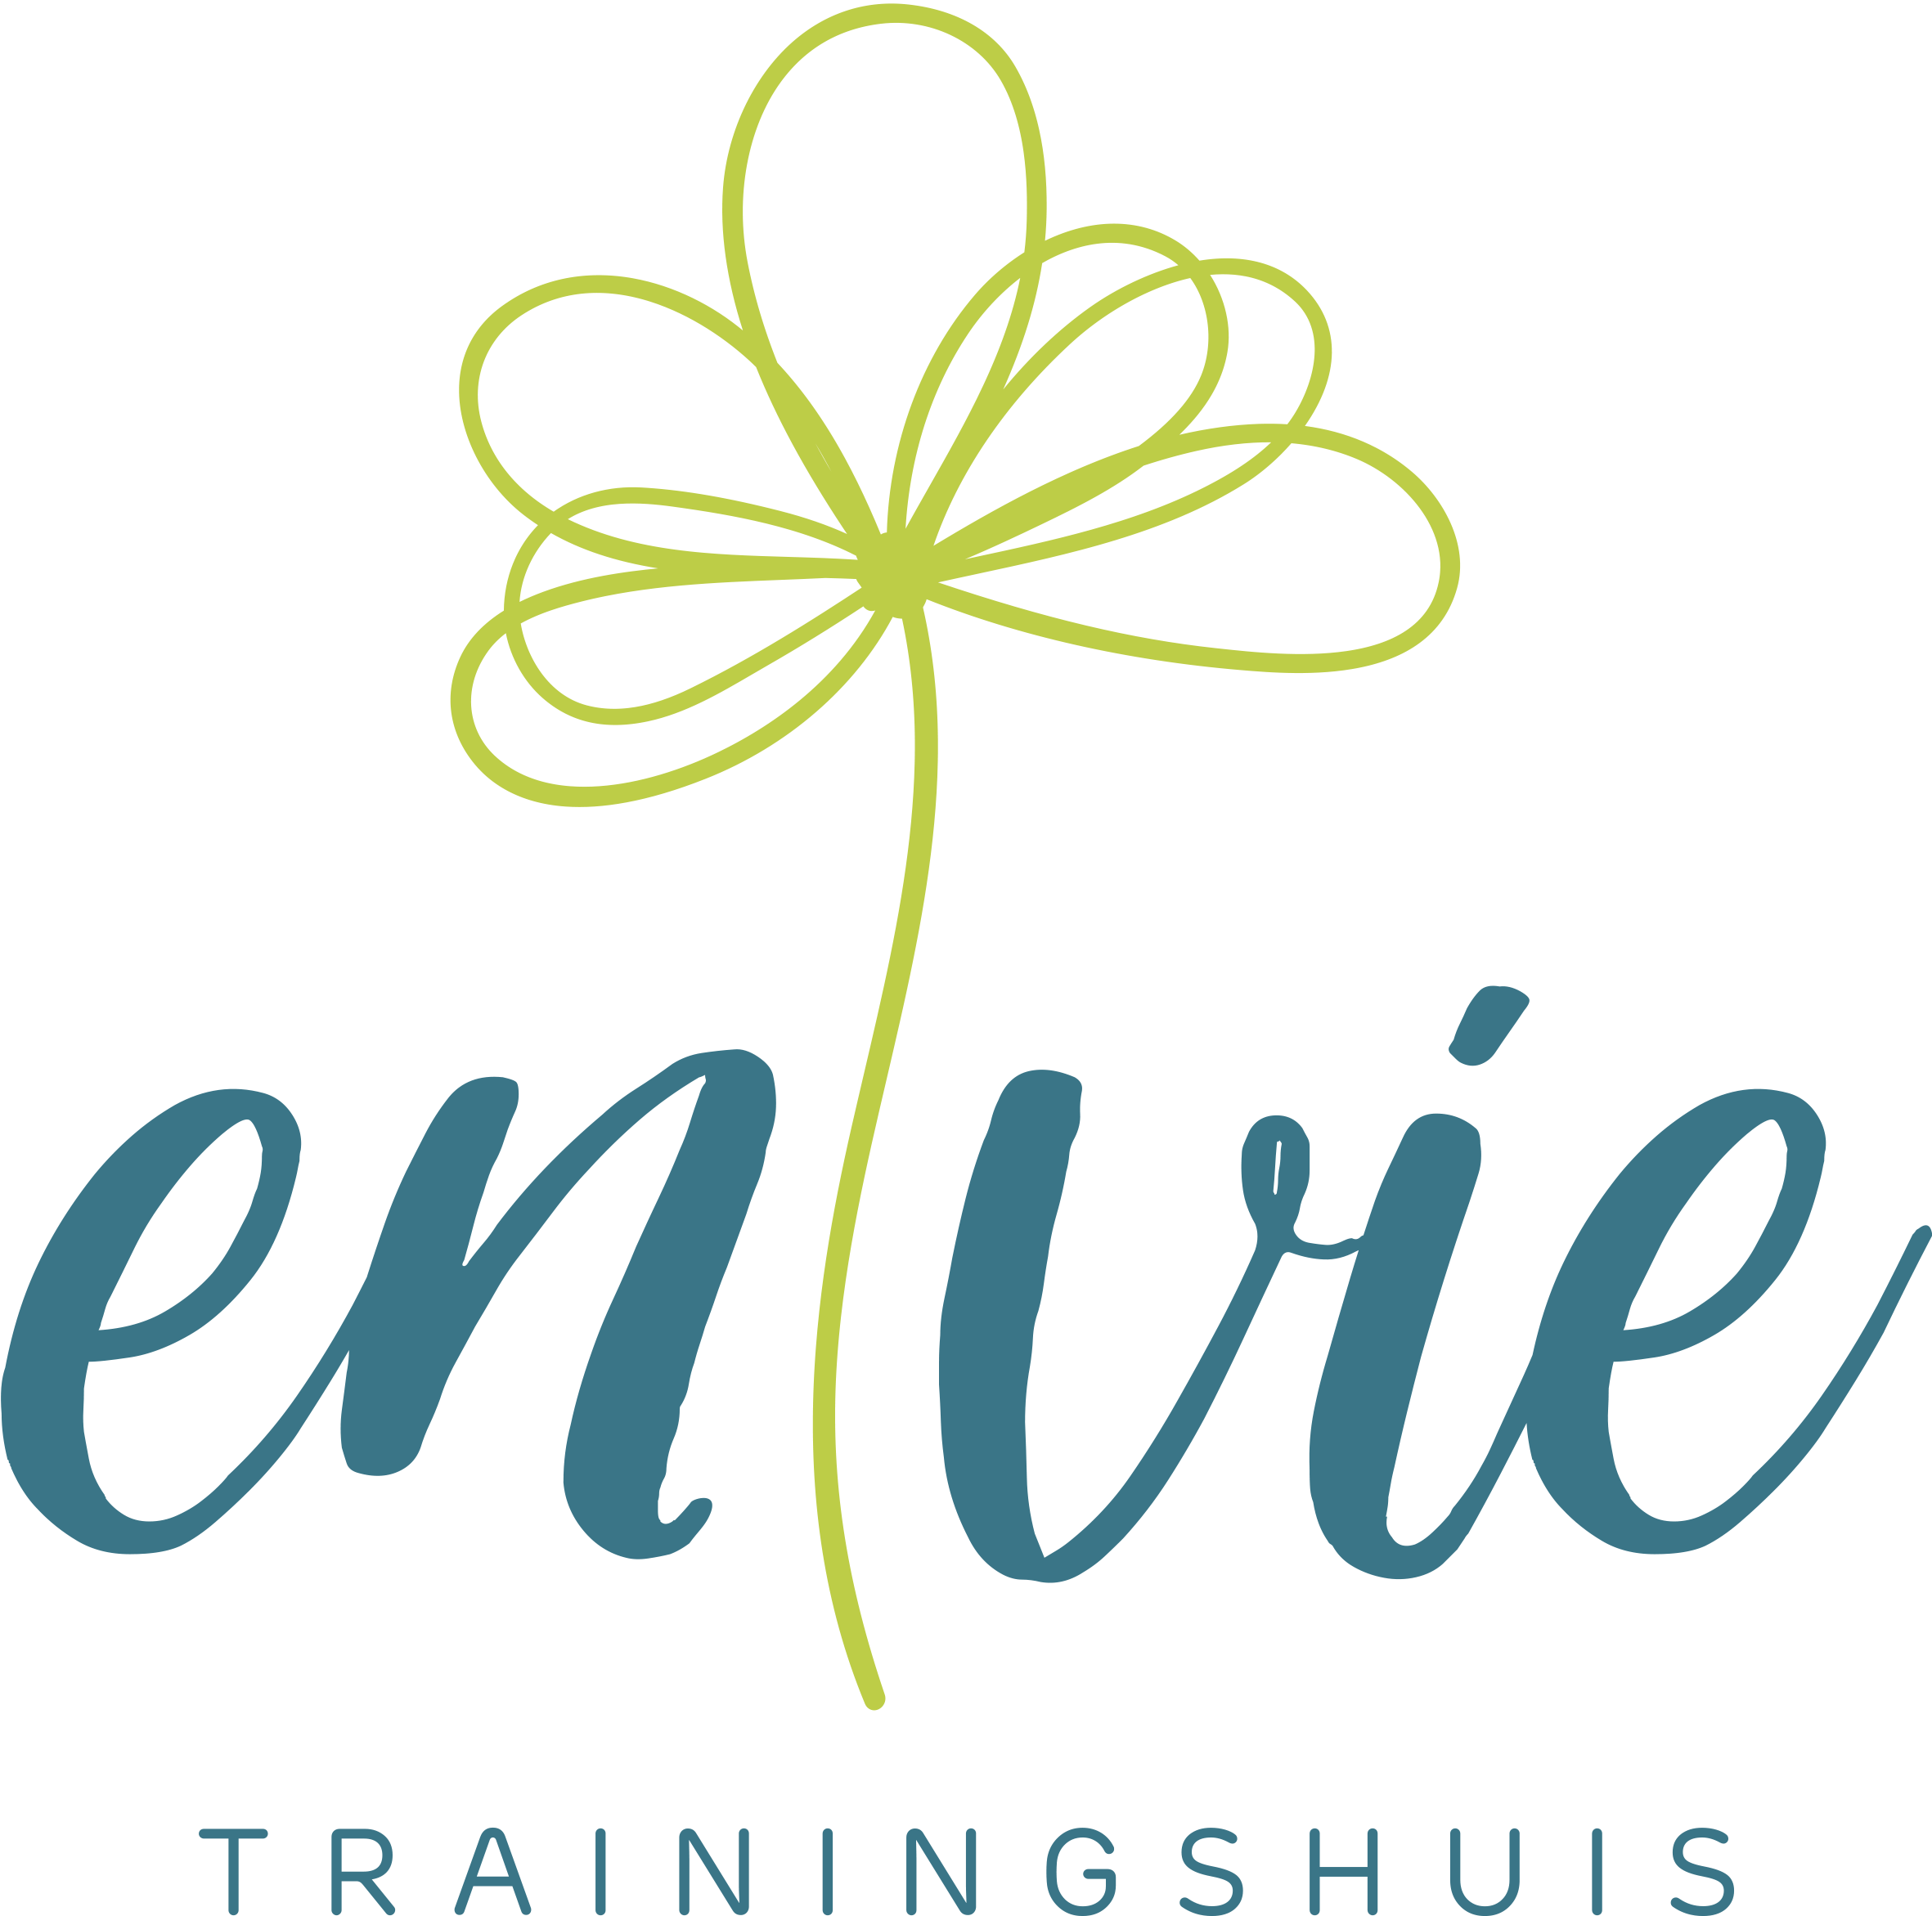 Trainingshuis En-Vie